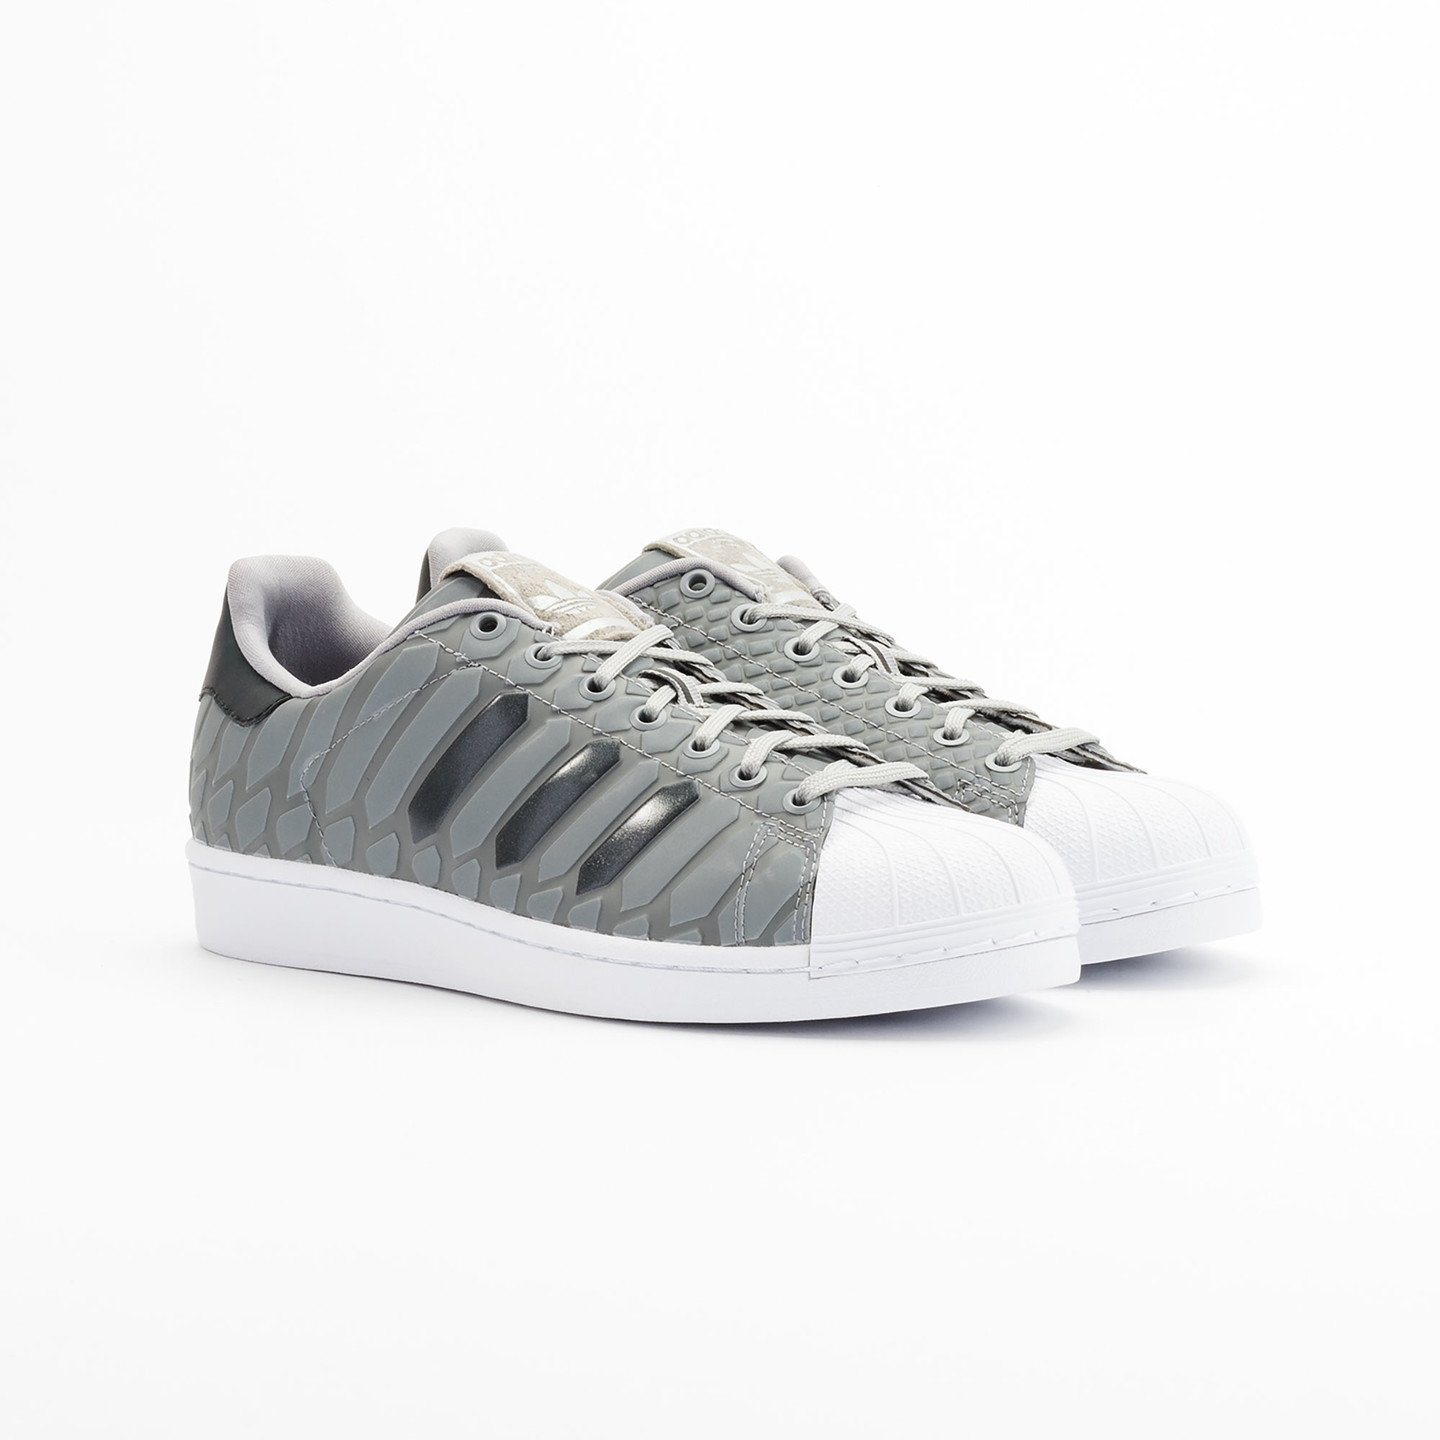 Adidas Superstar Xeno Pack Ltonix / Supcol / Ftwwht D69367-38